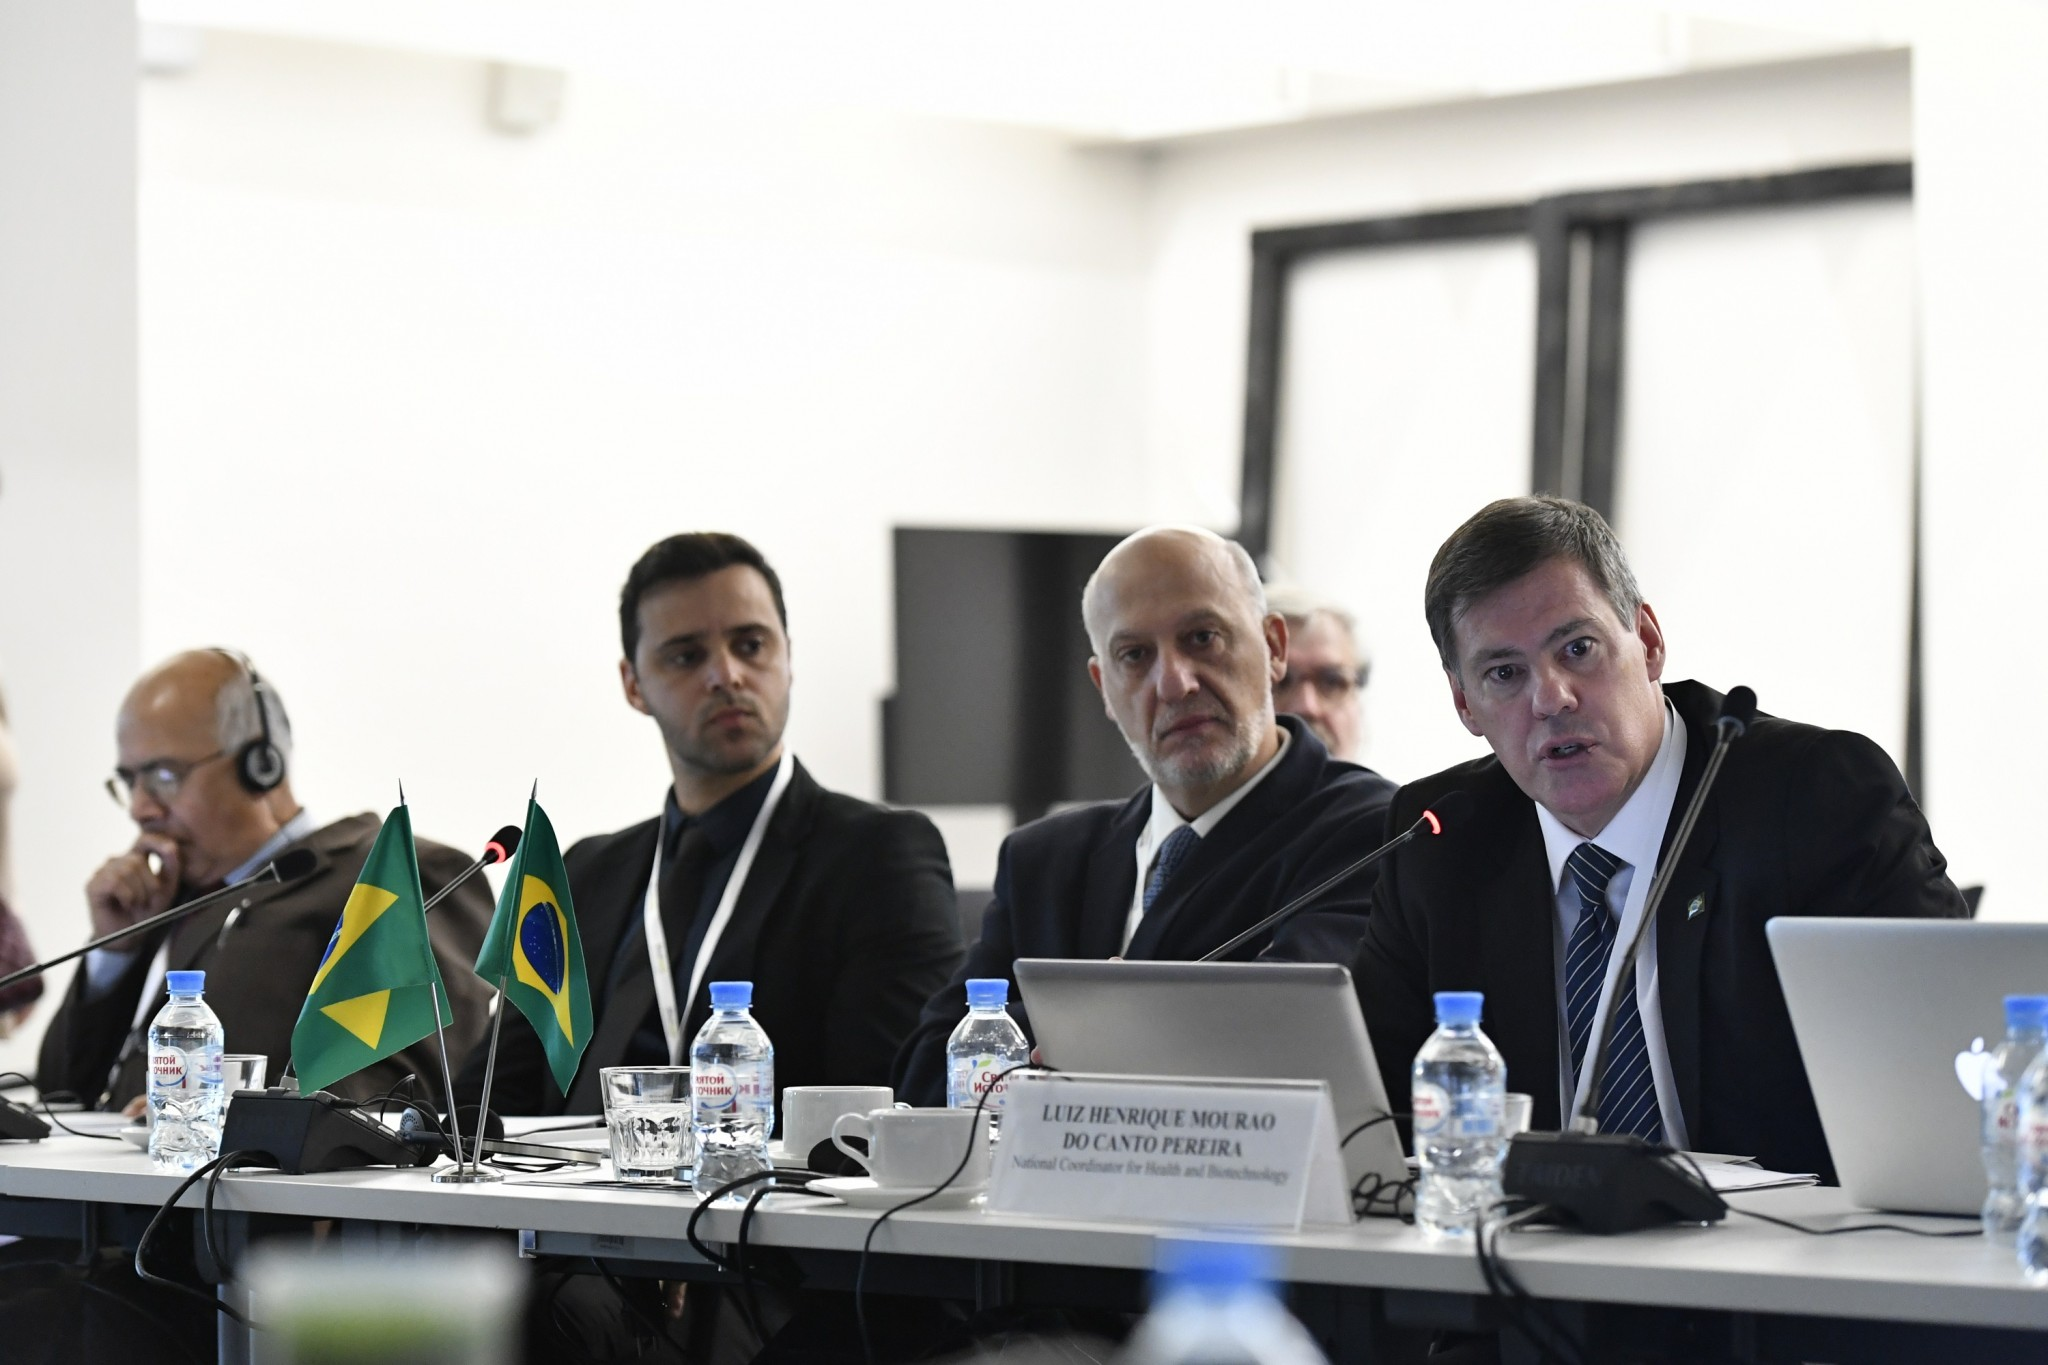 Members of the Brazilian delagation, including Dr. Luiz Henrique Mourão do Canto Pereira (right). Photo: Skoltech.